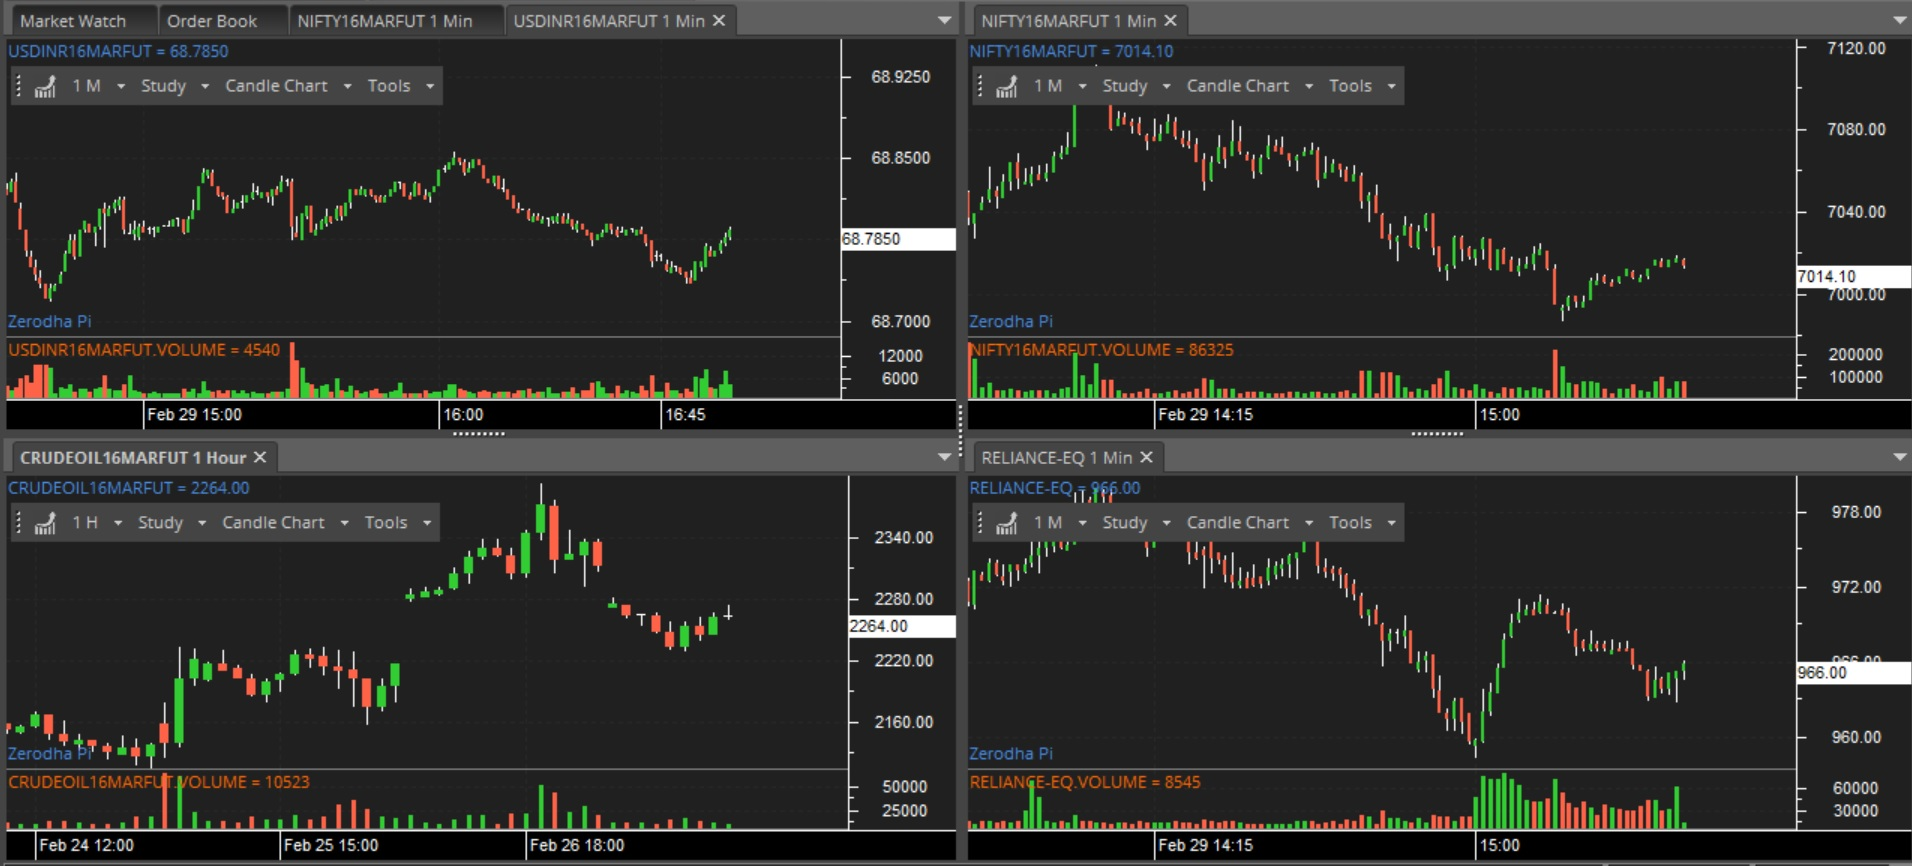 Nse market watch on desktop download. Tendalexander.ga